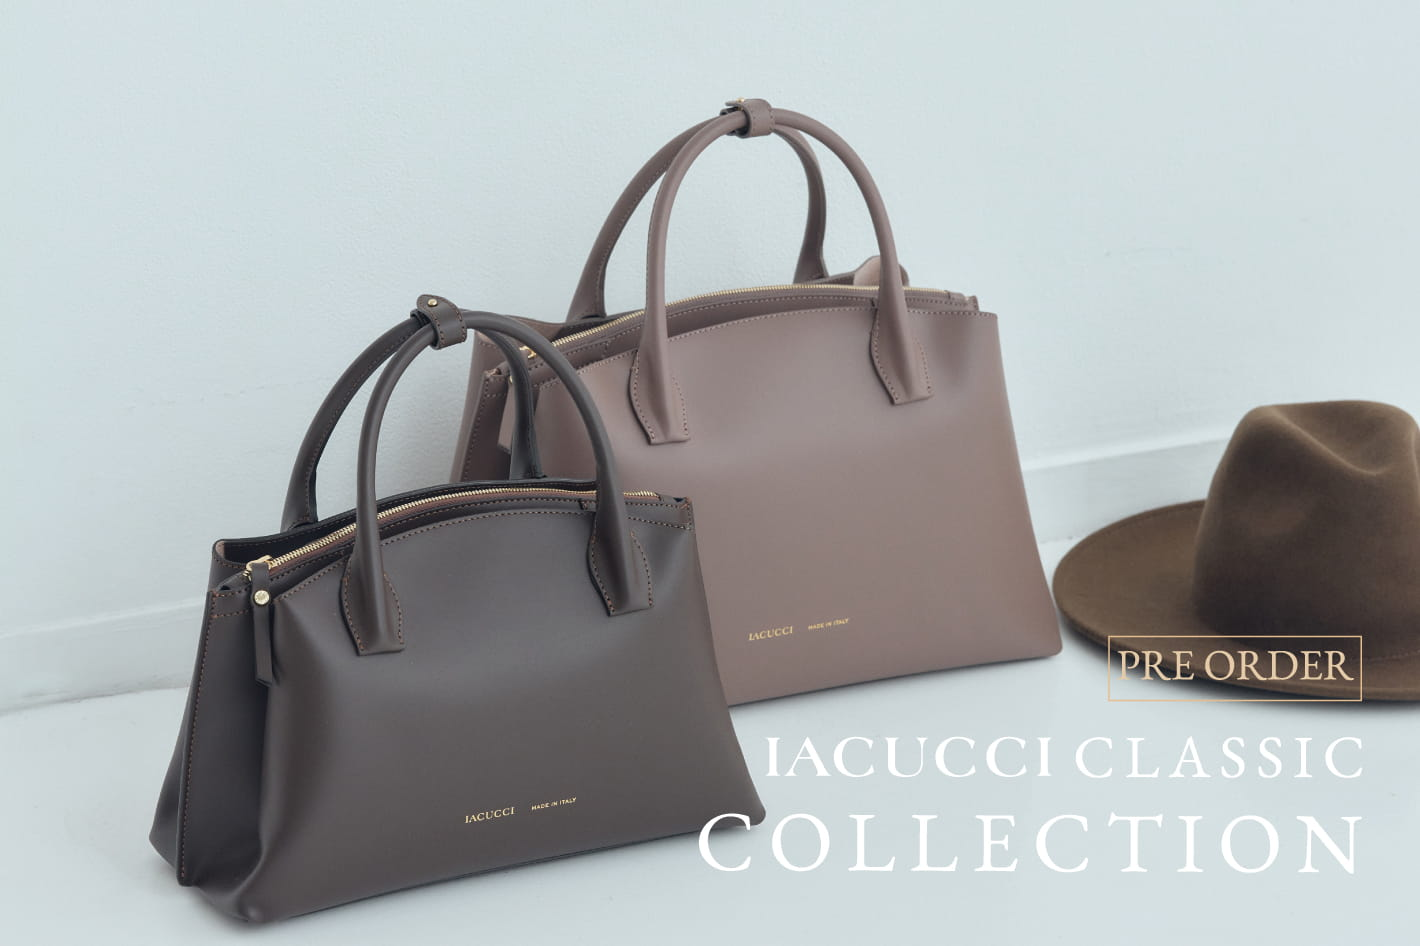 IACUCCI ≪PRE ORDER≫CLASSIC COLLECTION debut!